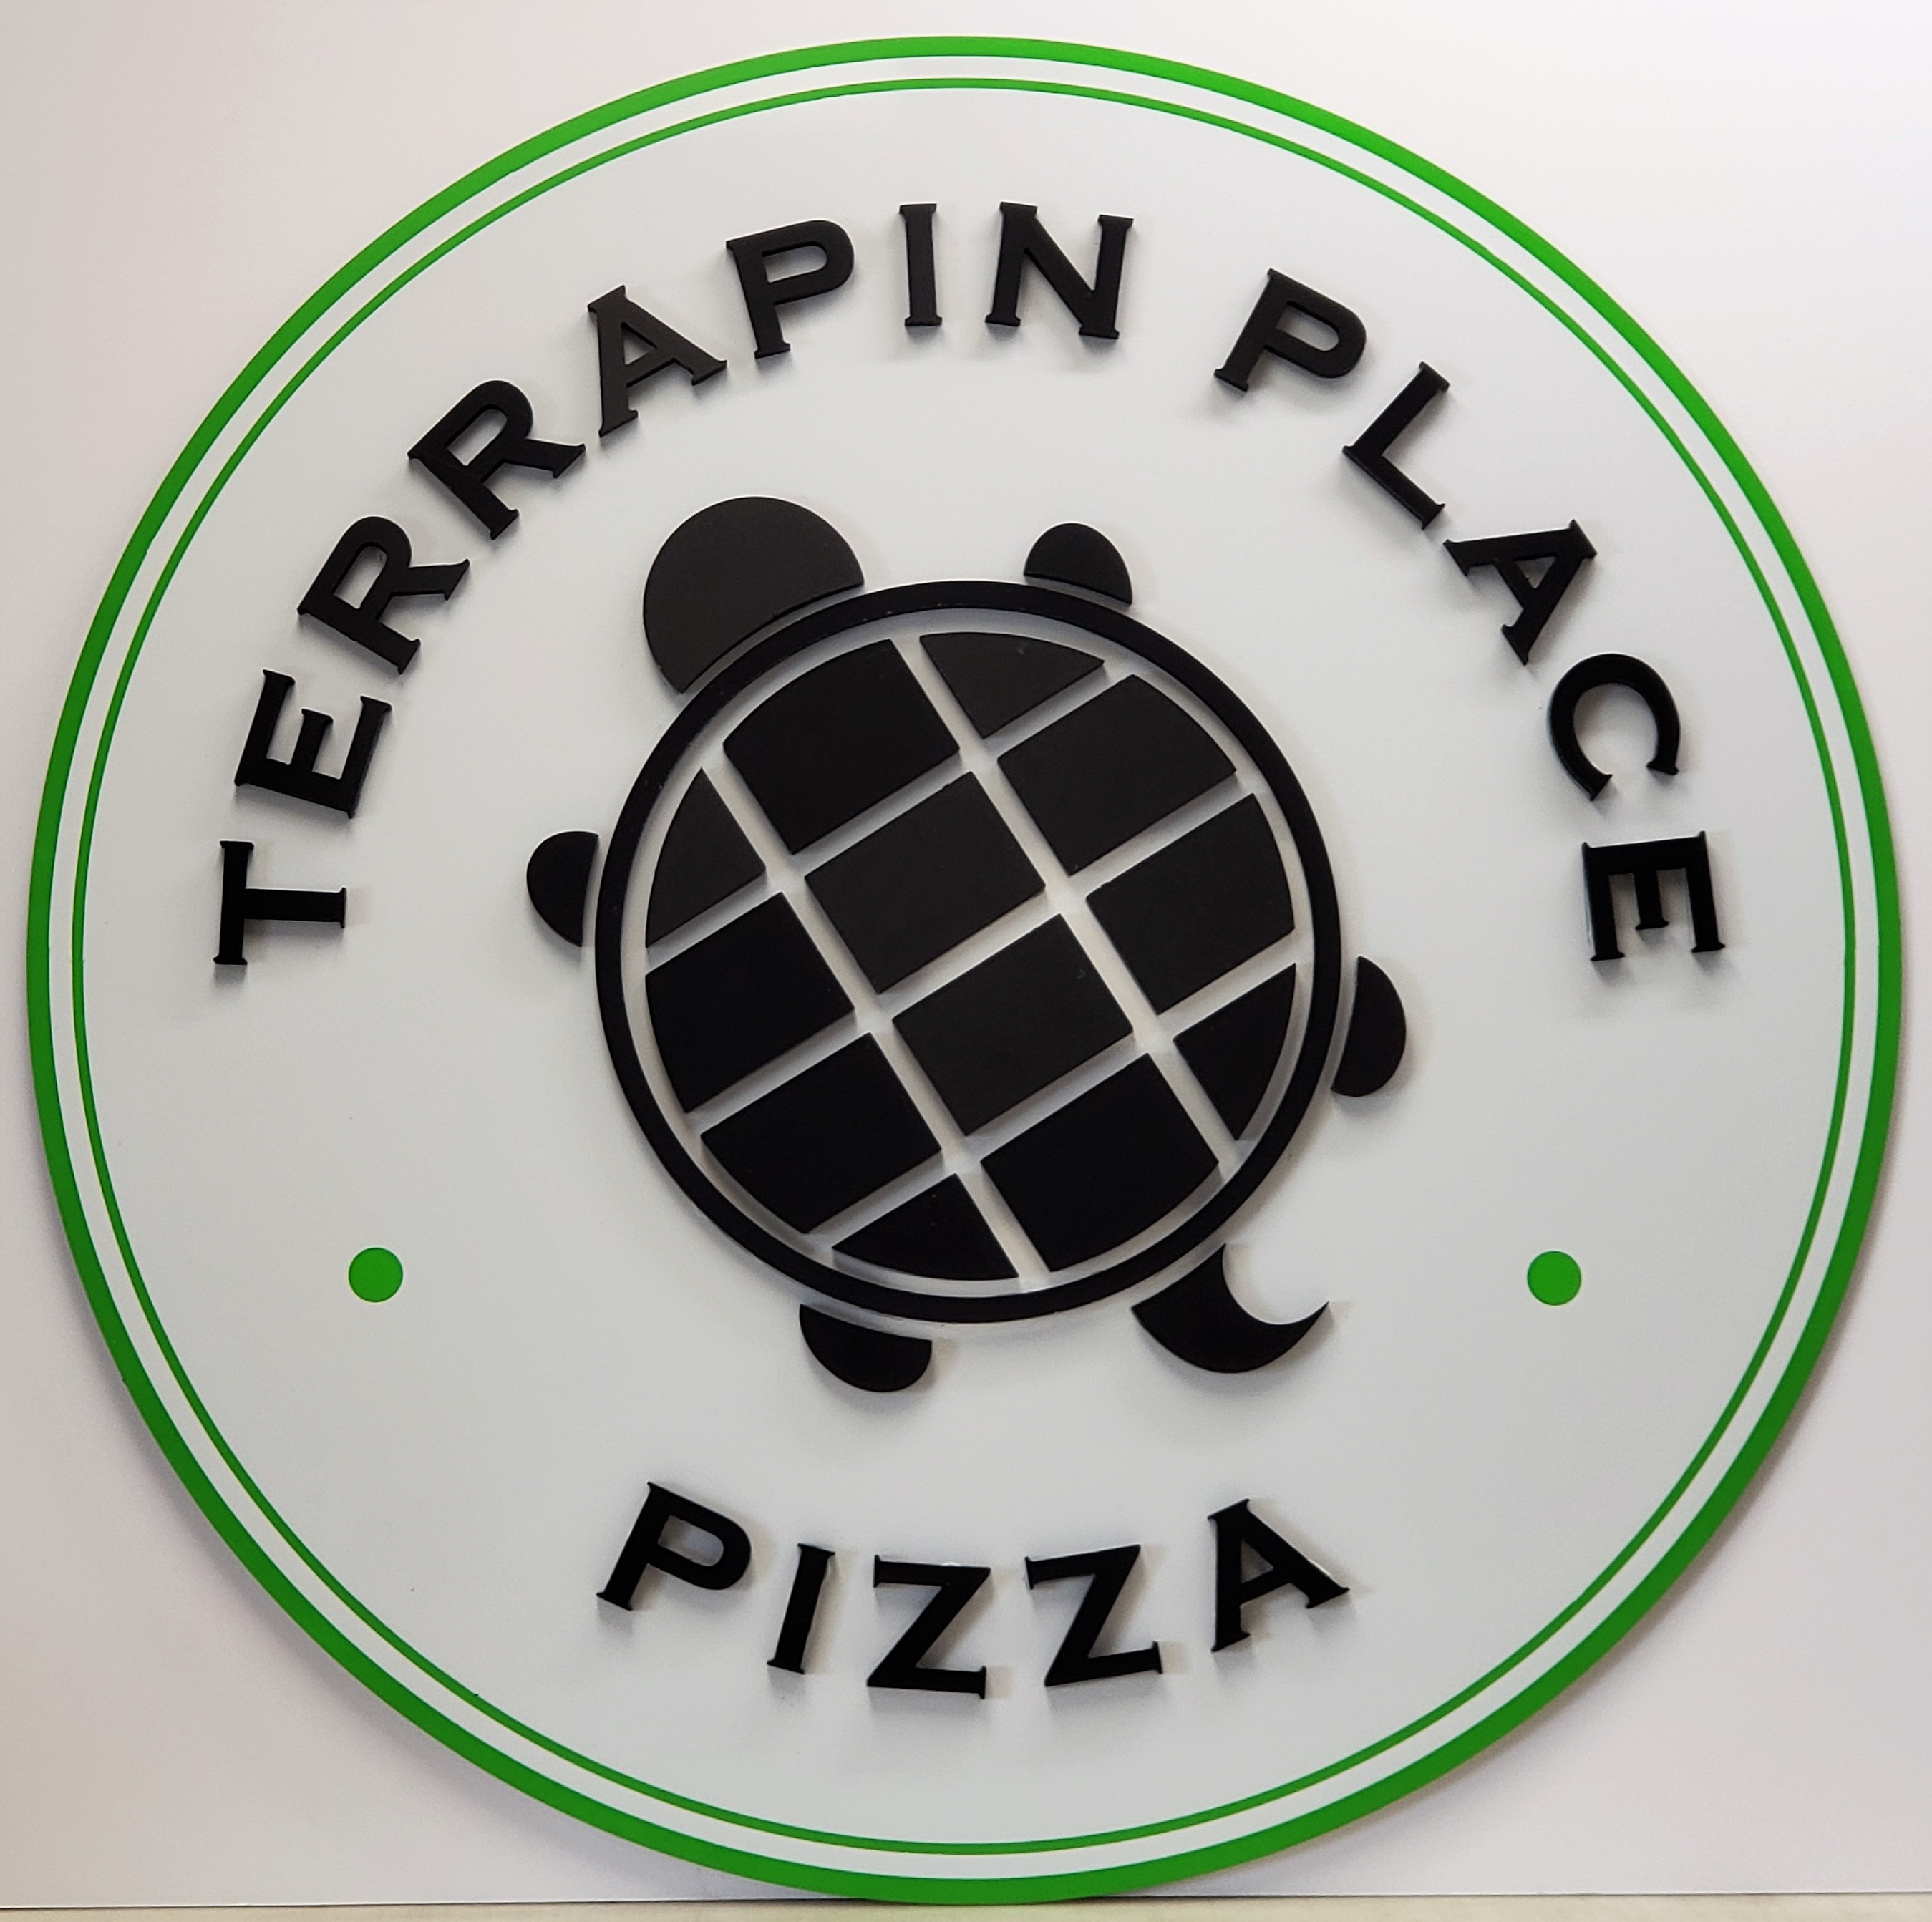 Terrapin Place Pizza Sign 3D